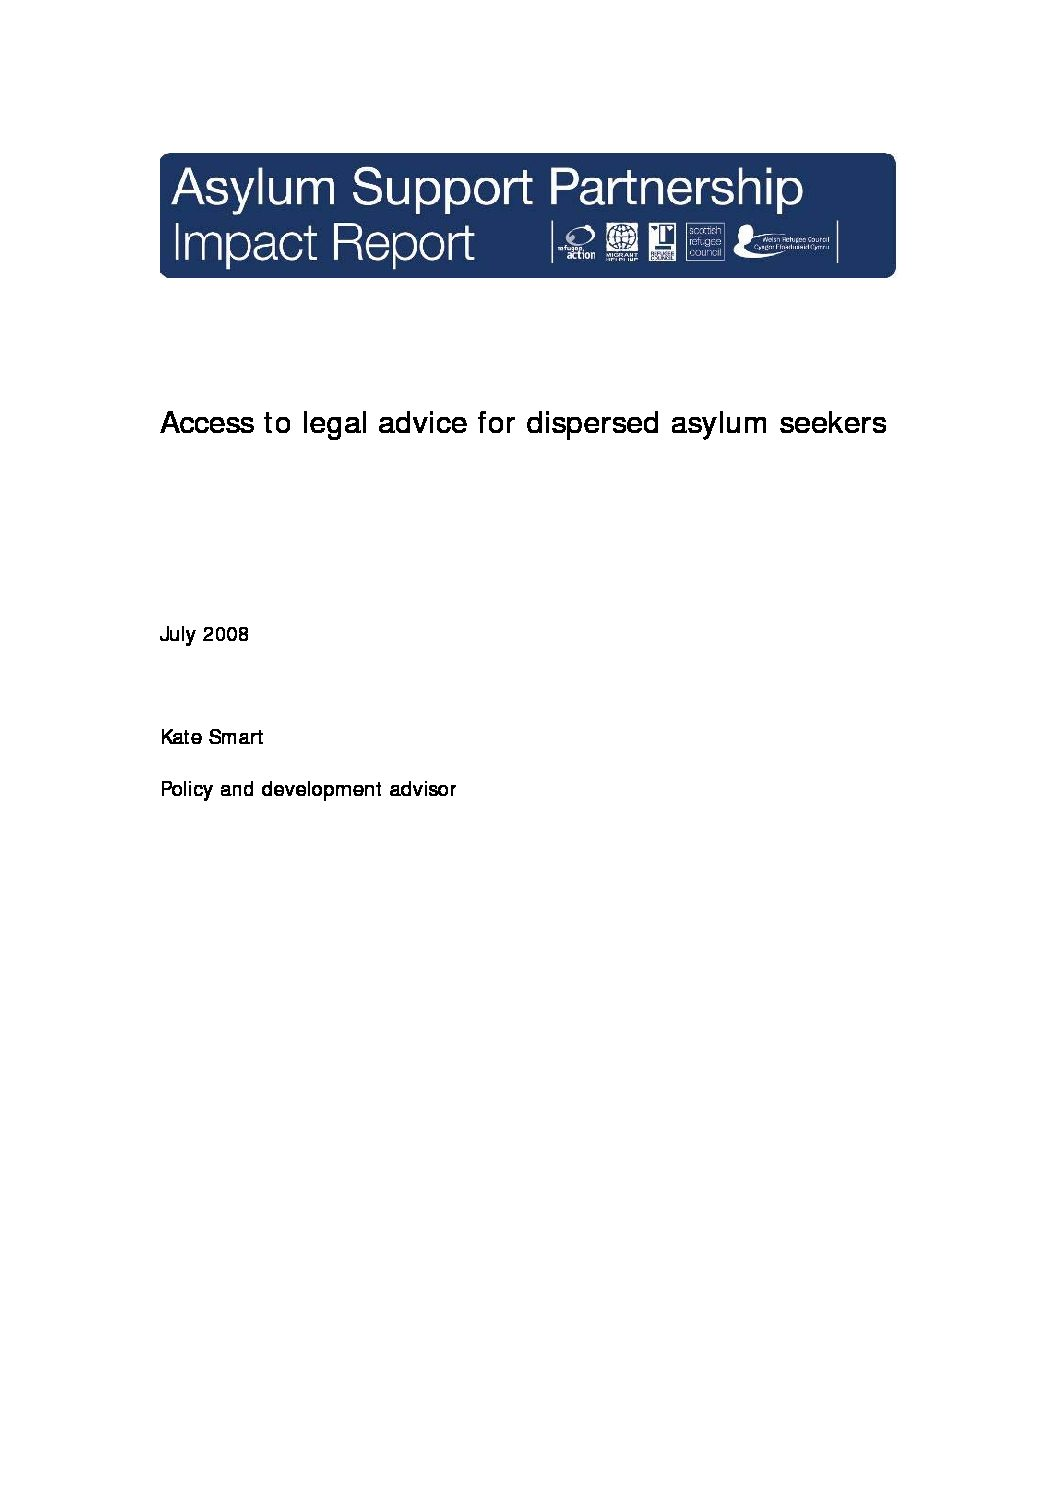 Access-to-legal-advice-for-dispersed-asylum-seekers-Impact-report-pdf